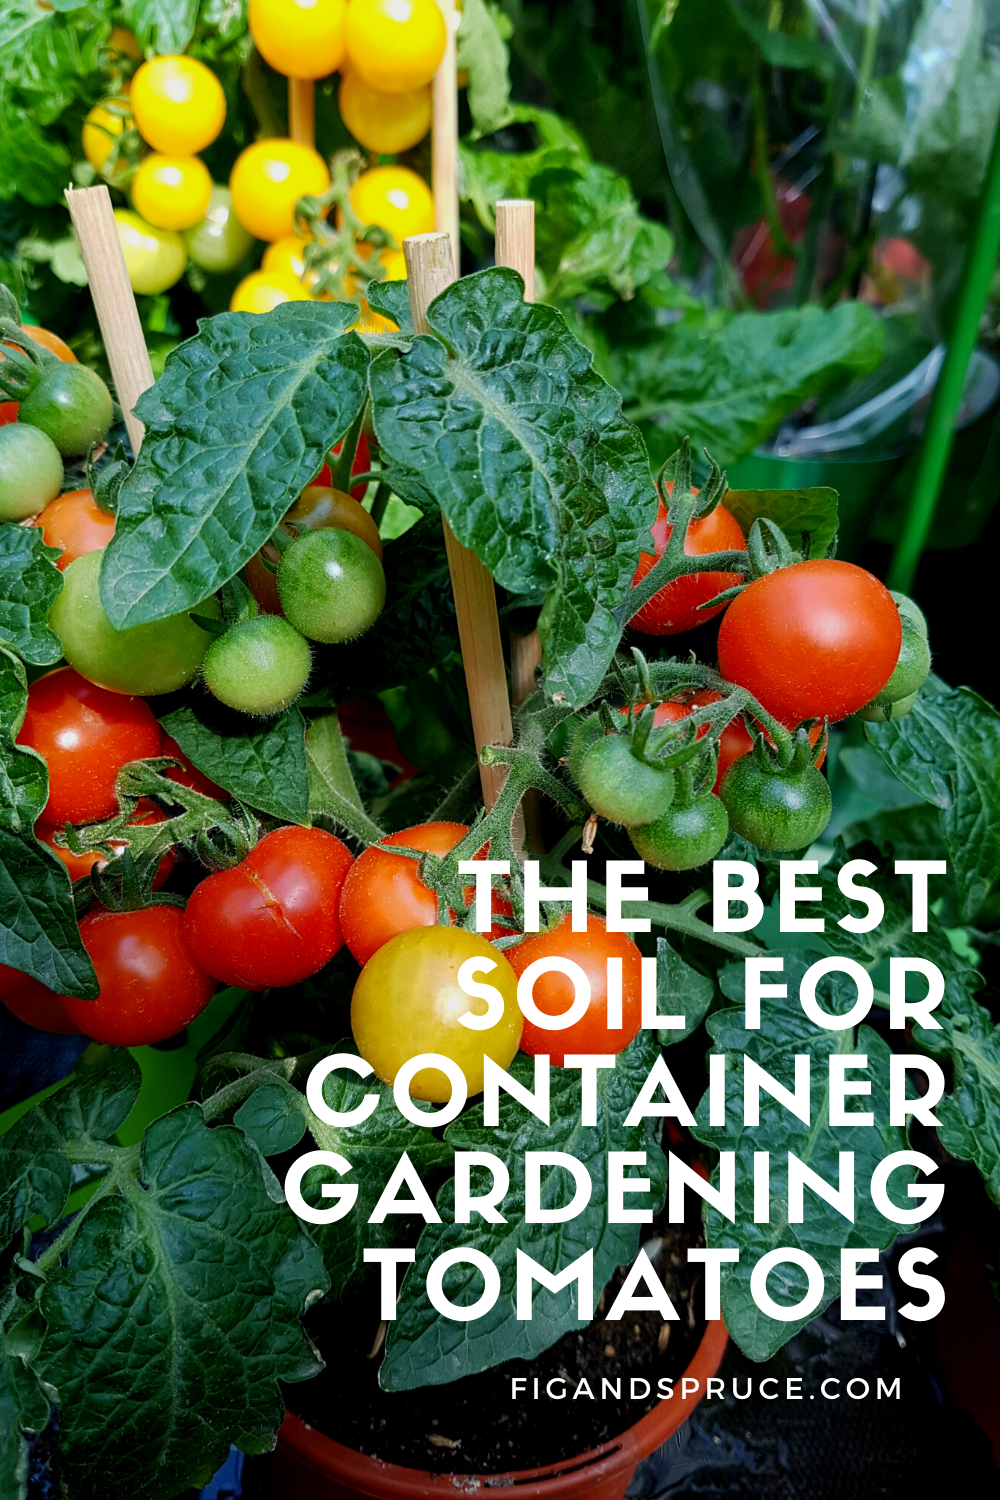 The Best Soil for Container Garden Tomatoes